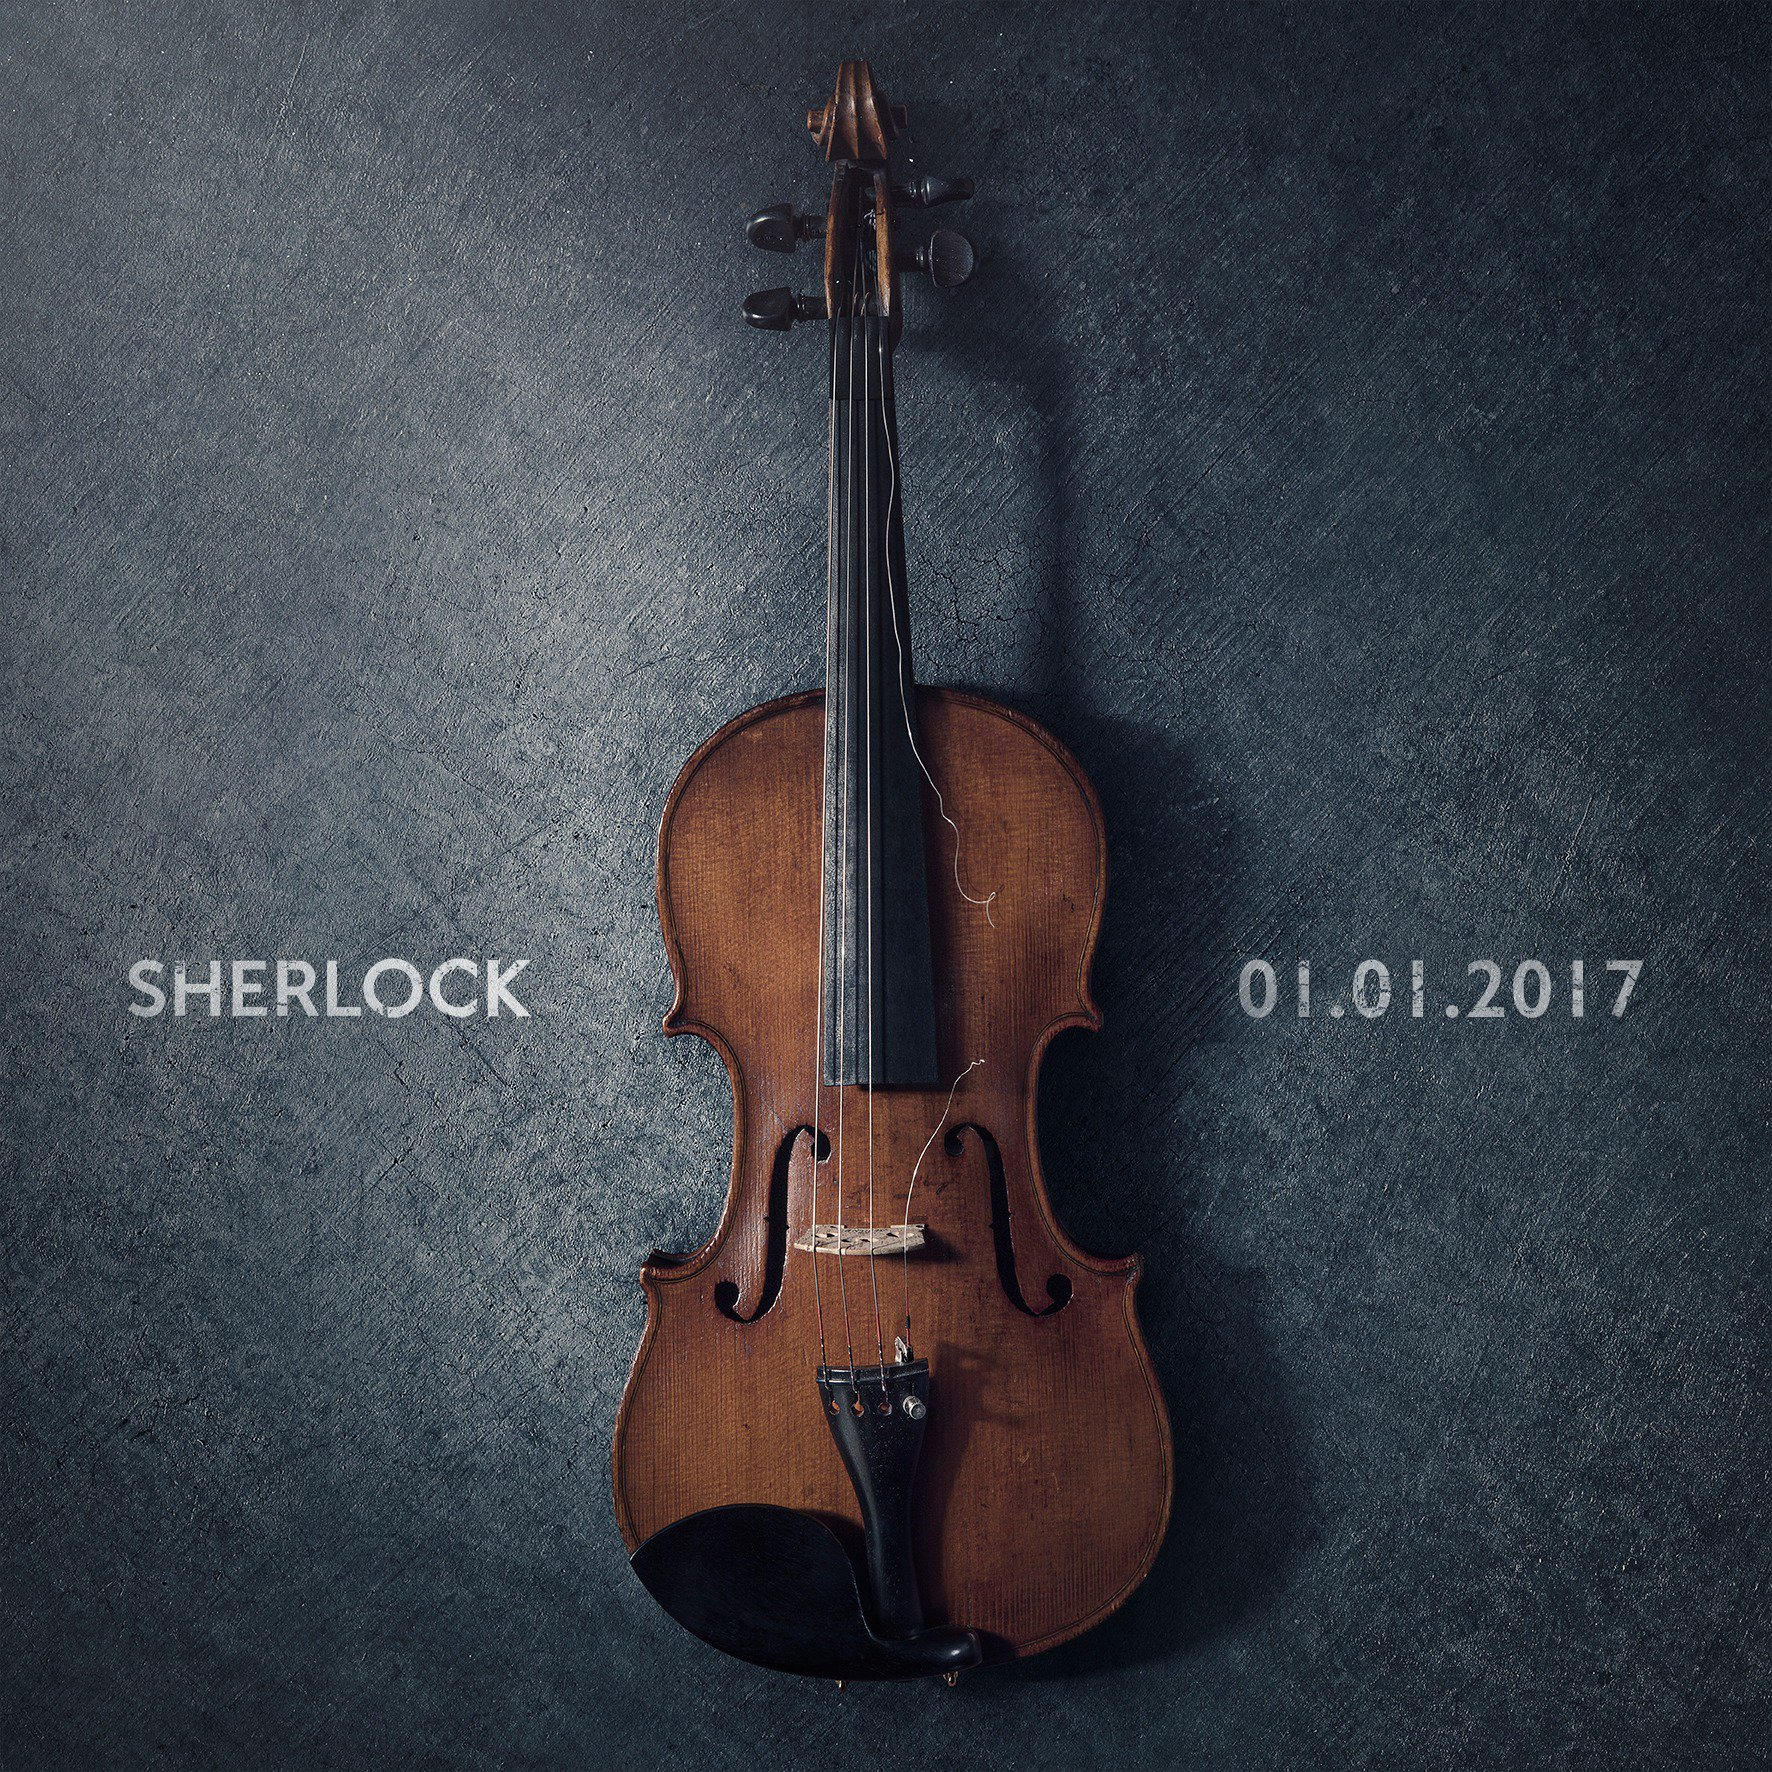 Sherlock will return in The Six Thatchers on January 1, 2017. #Sherlock https://t.co/s6RJdaOZdI